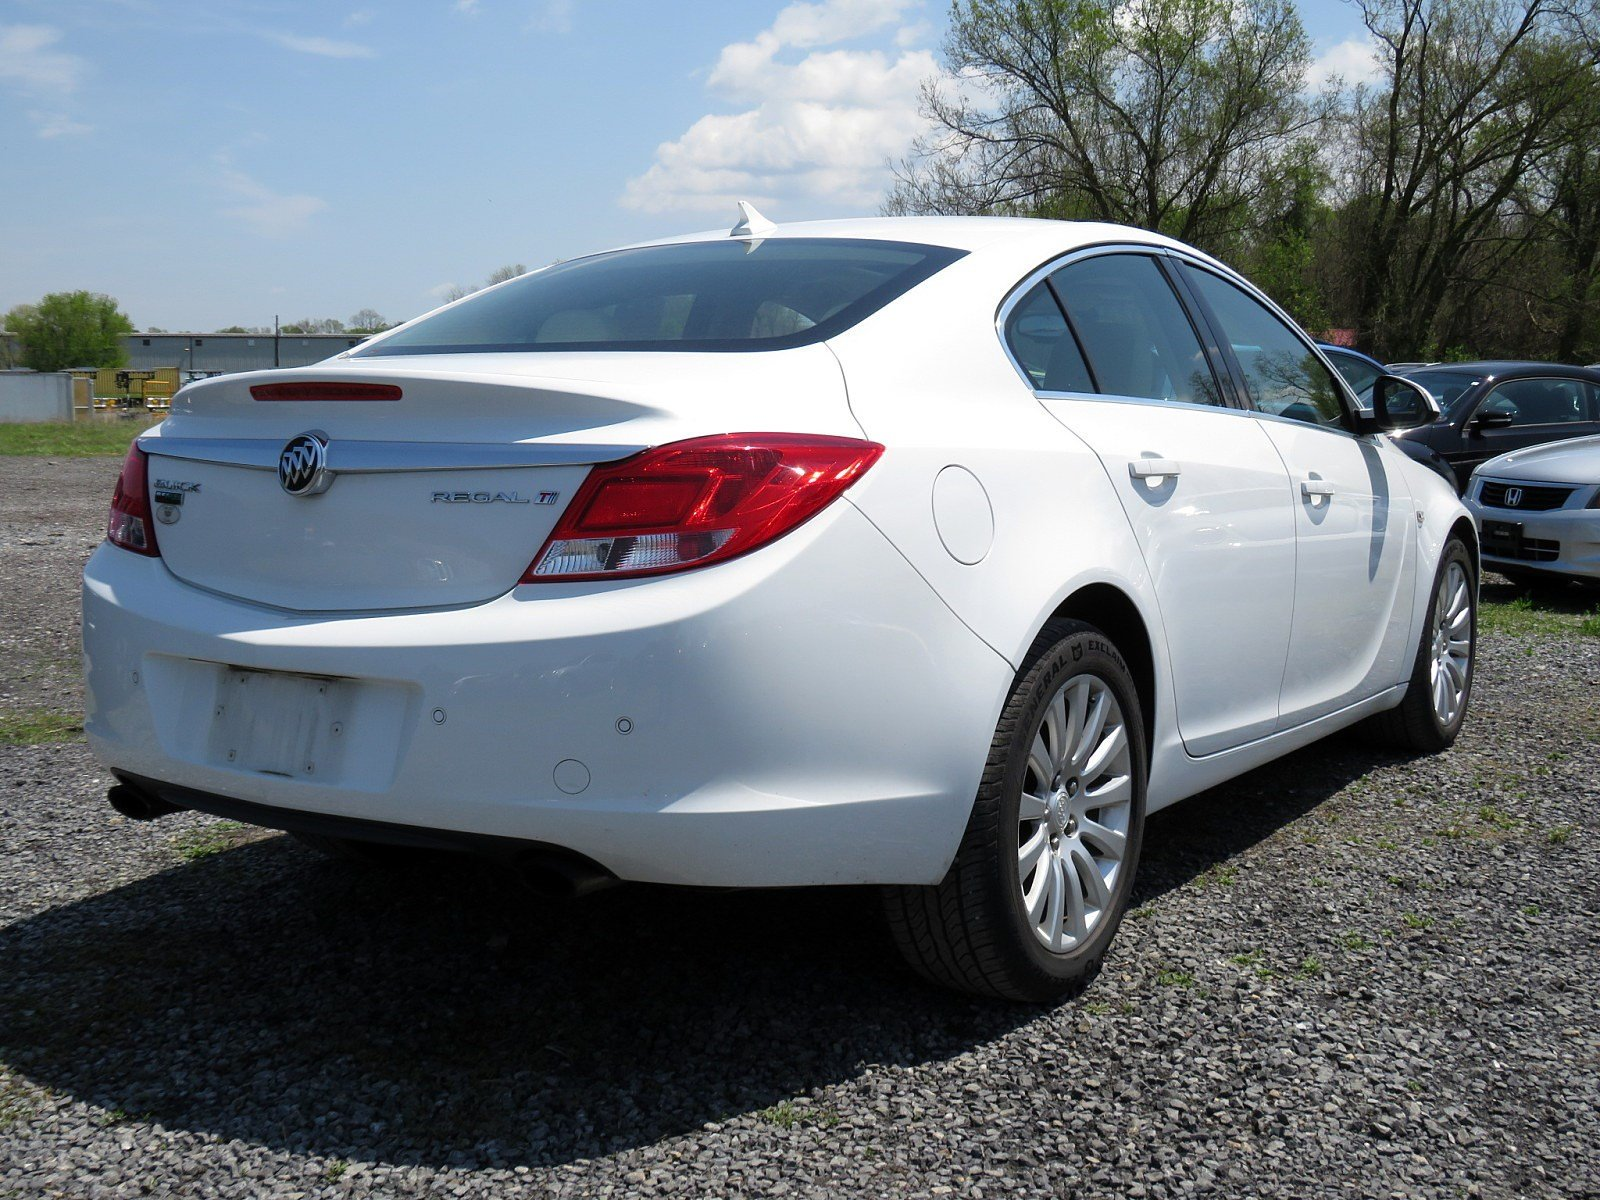 Pre-Owned 2011 Buick Regal CXL Turbo TO2